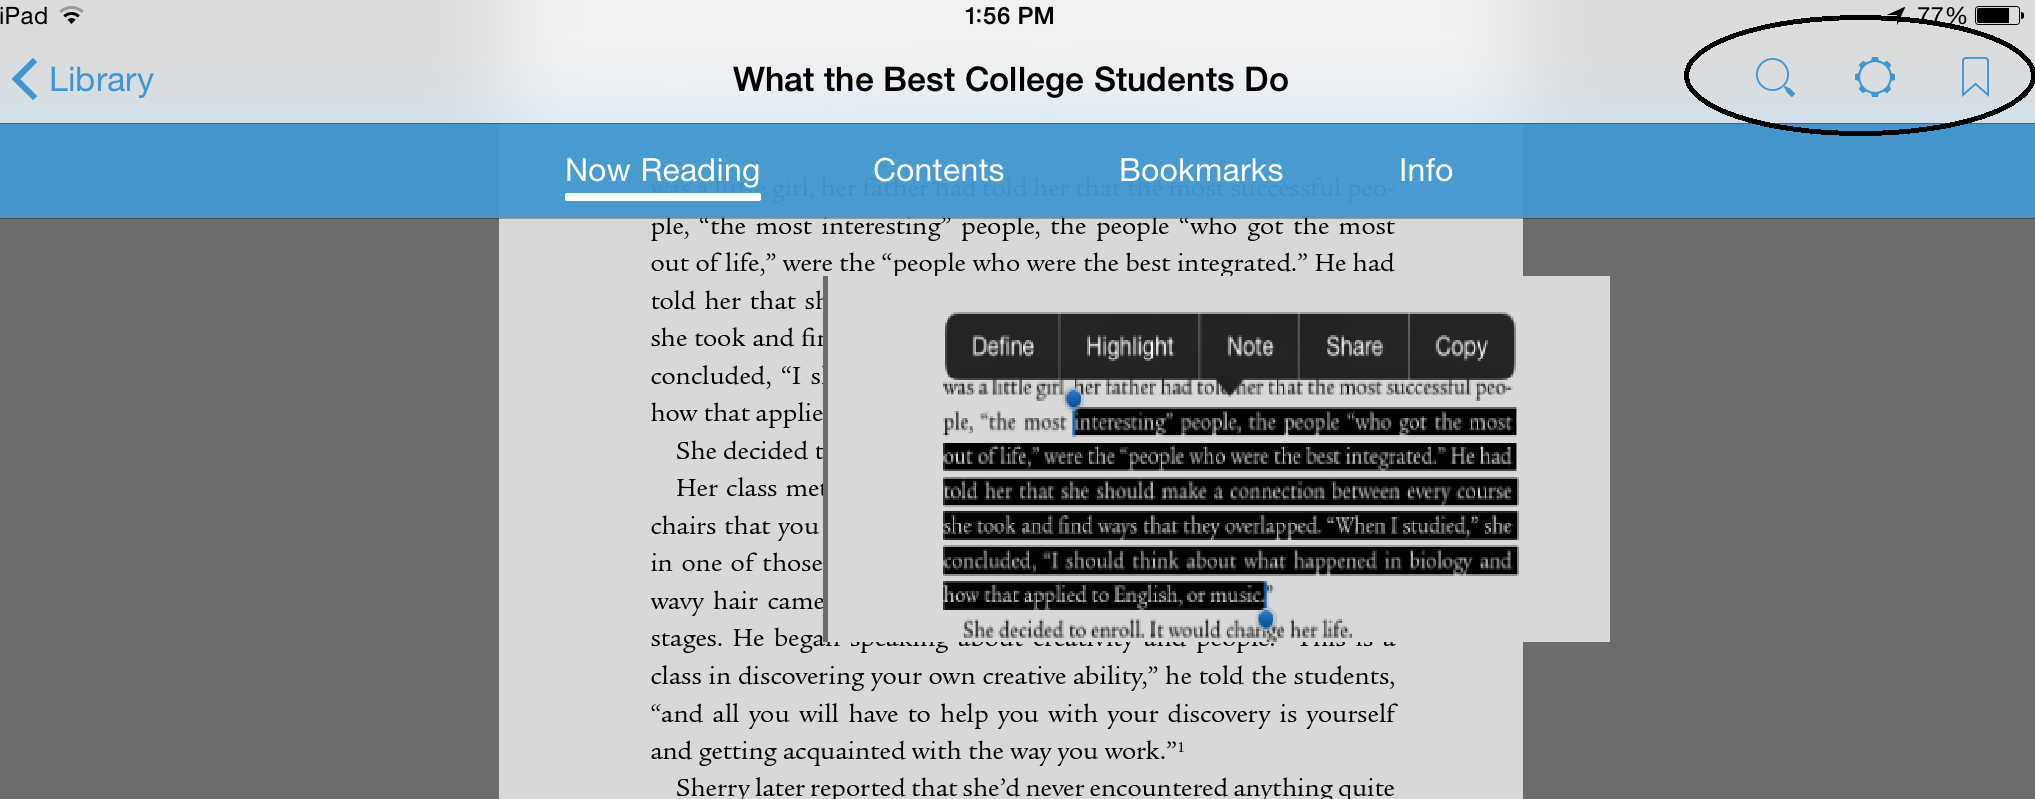 ebsco ebook display in Bluefire Reader for iOS